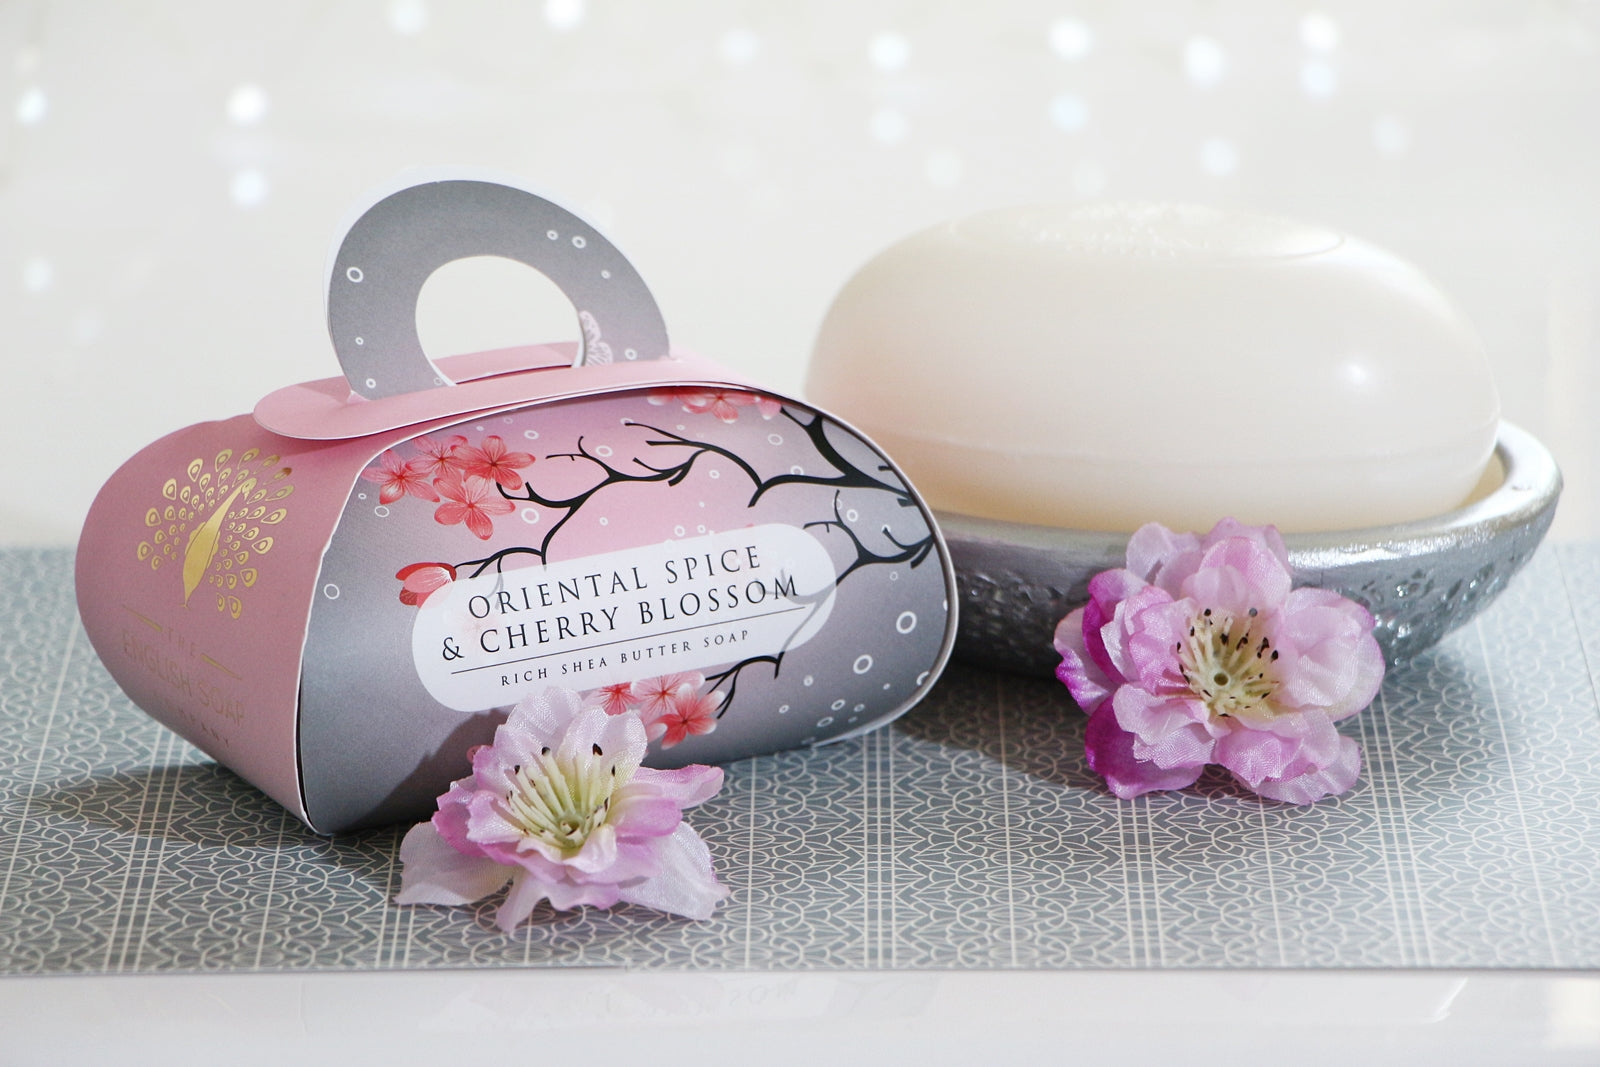 English Soap Company Luxury Bath Soap - Oriental Spice & Cherry Blossom